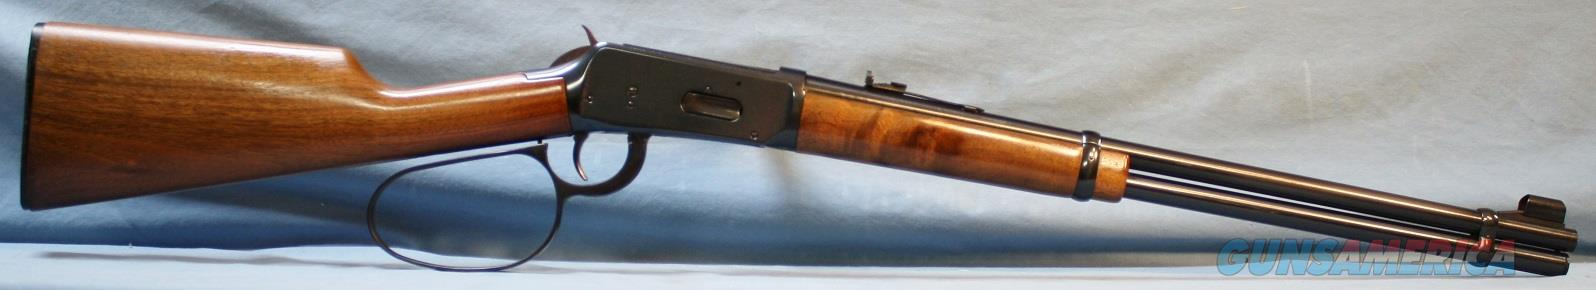 Winchester 94 Big Loop Lever Action Carbine (made 1977), .30-30 win. Free Shipping!  Guns > Rifles > Winchester Rifles - Modern Lever > Model 94 > Post-64